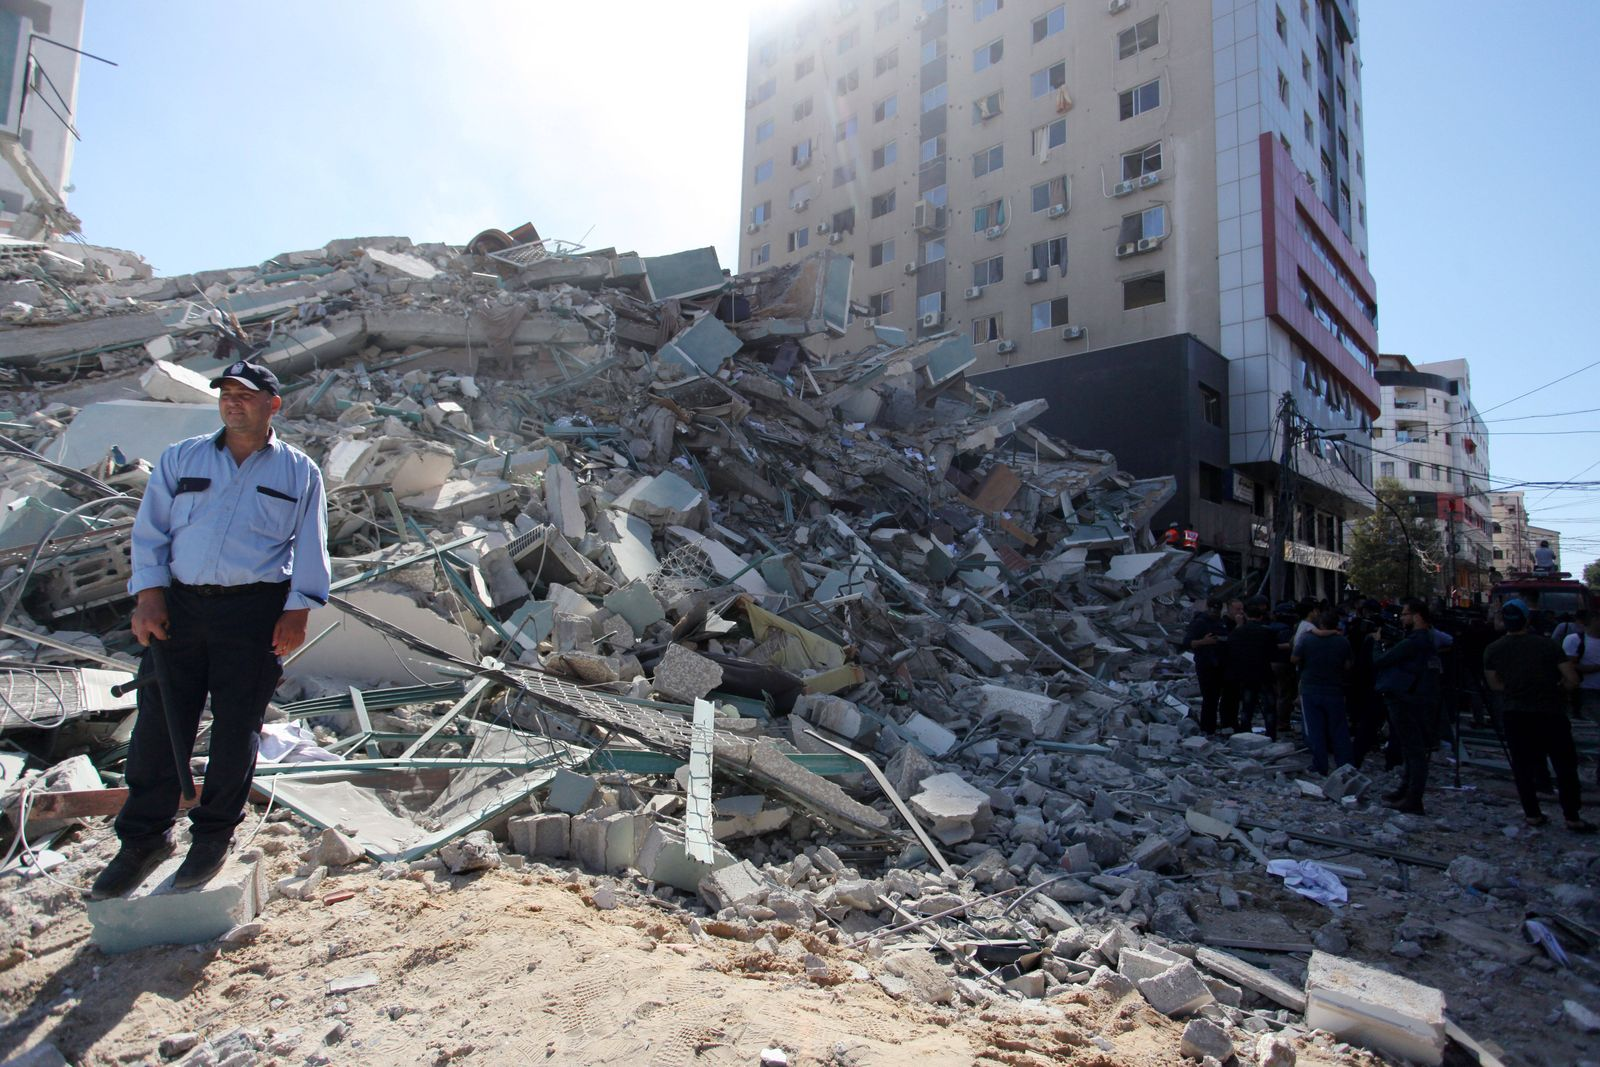 May 15, 2021, Gaza city, Gaza Strip, Palestinian Territory: Palestinians inspect the rubbles of the Jalaa Tower after i